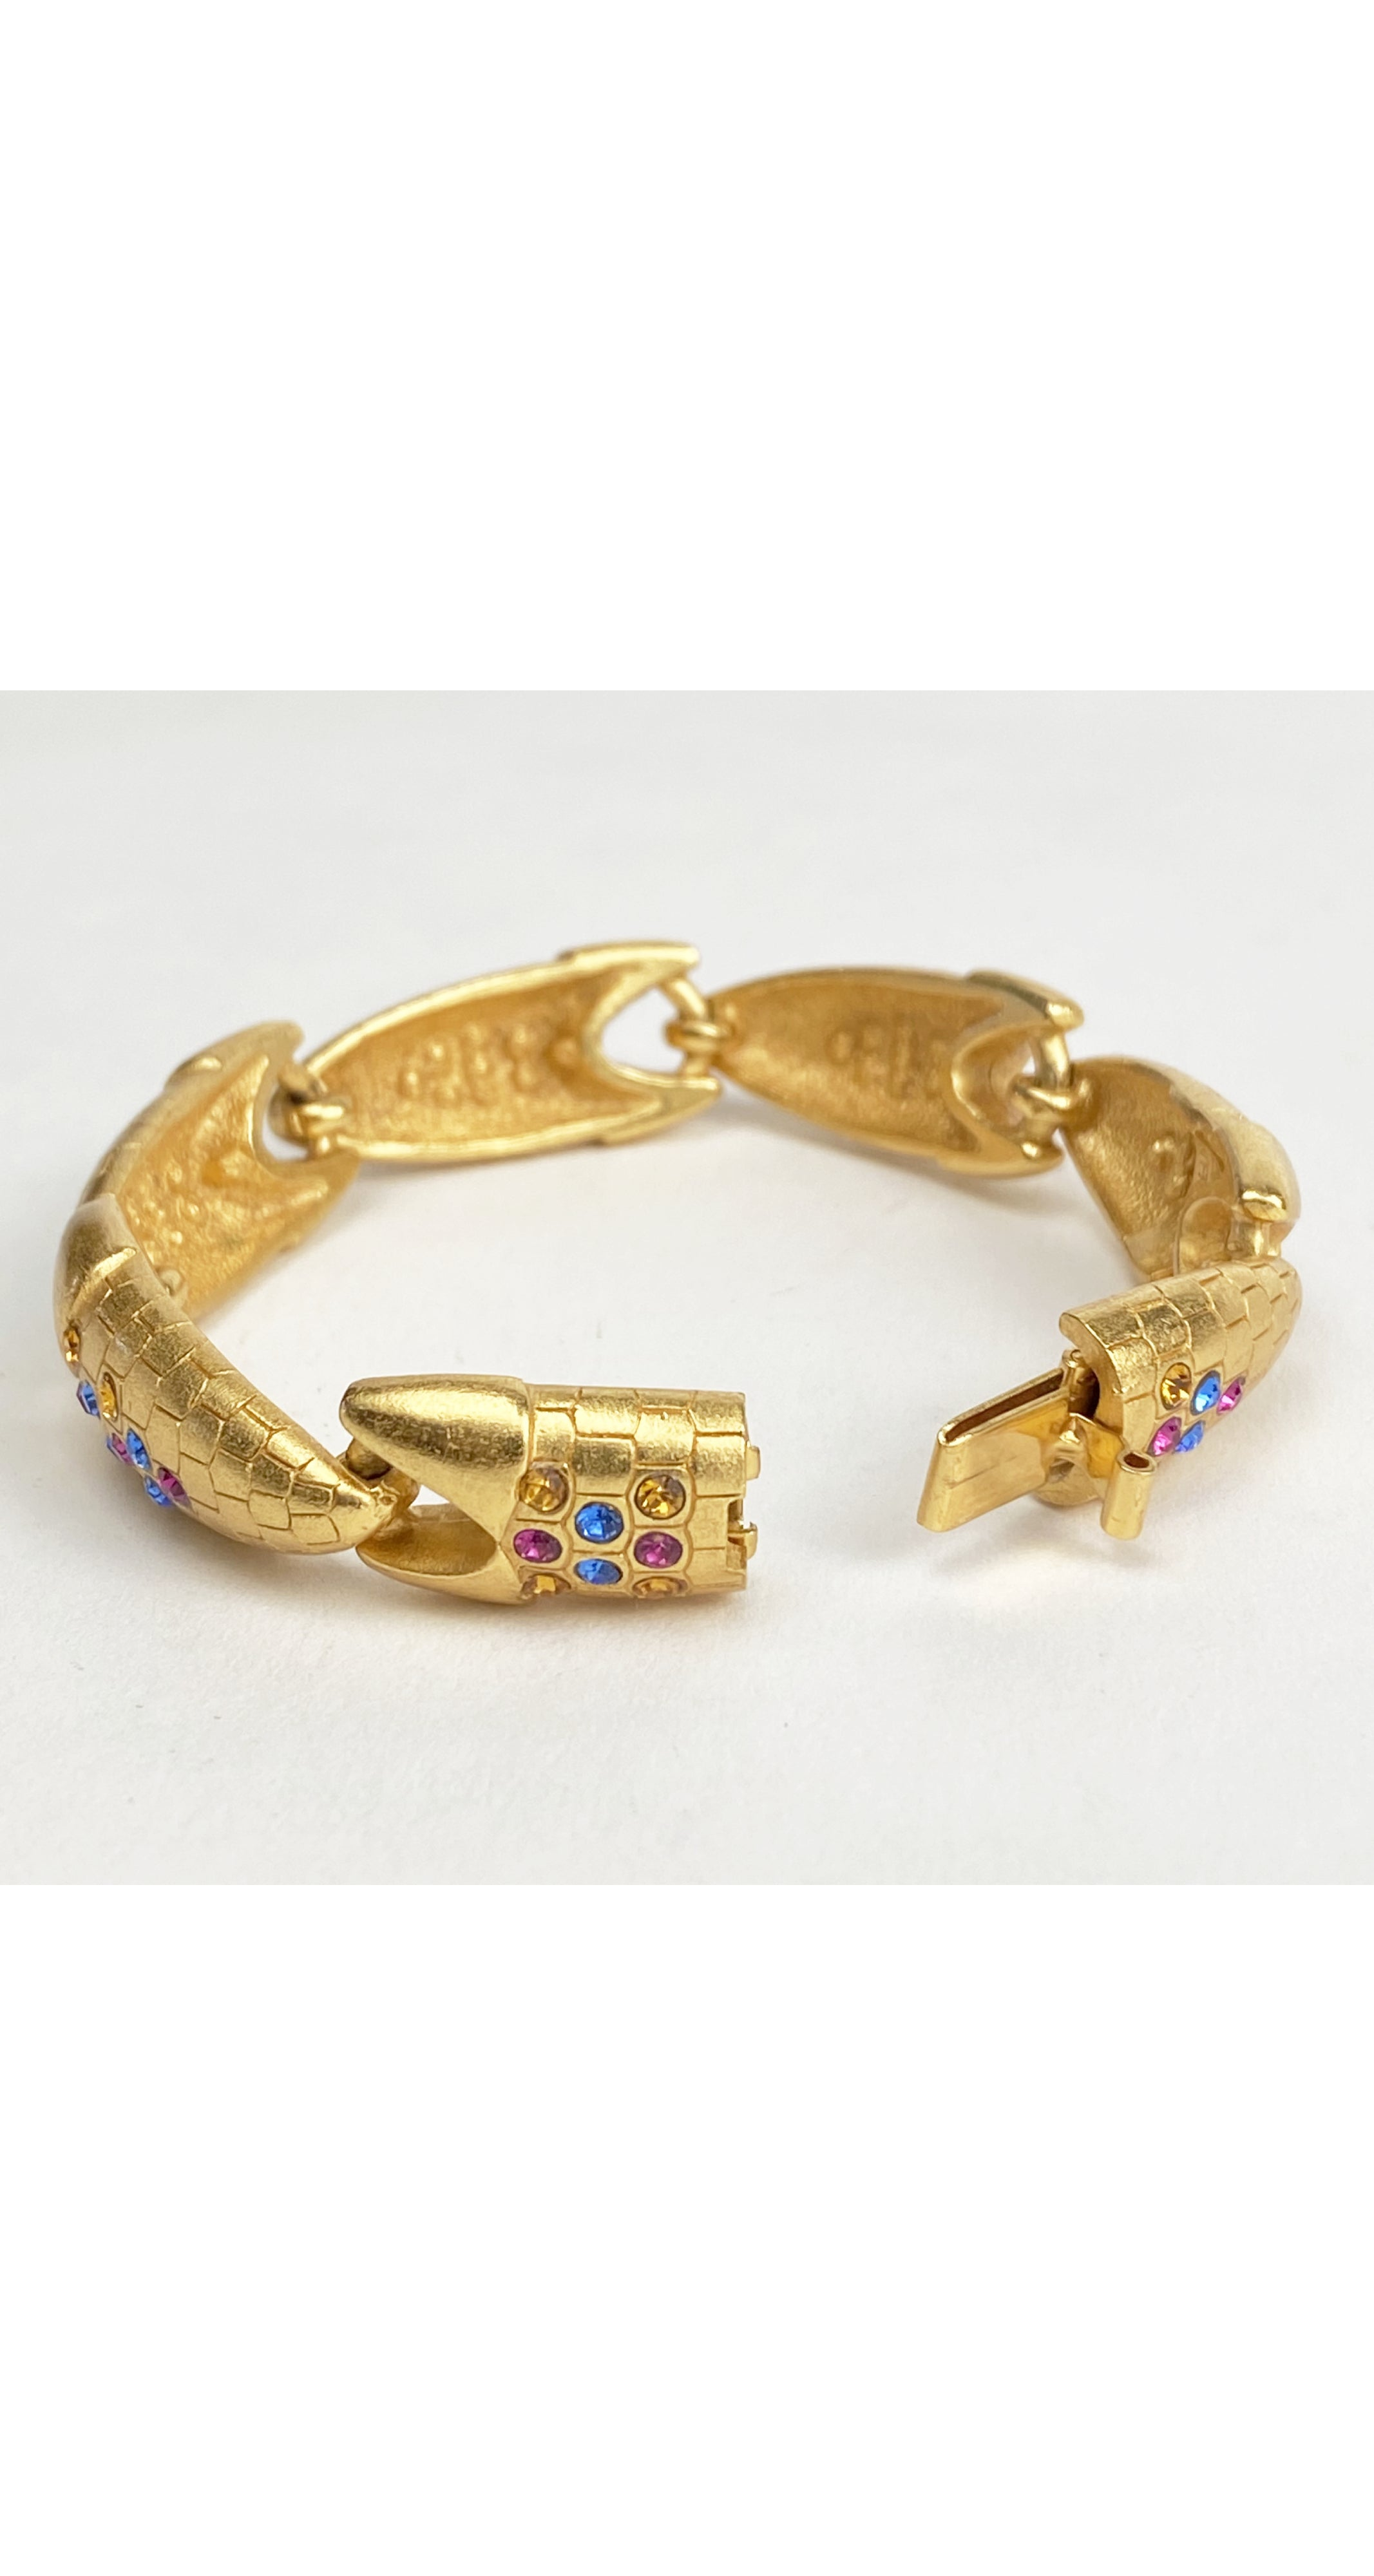 1990s Rhinestone Gold-Tone Clip-On Earrings & Bracelet Set